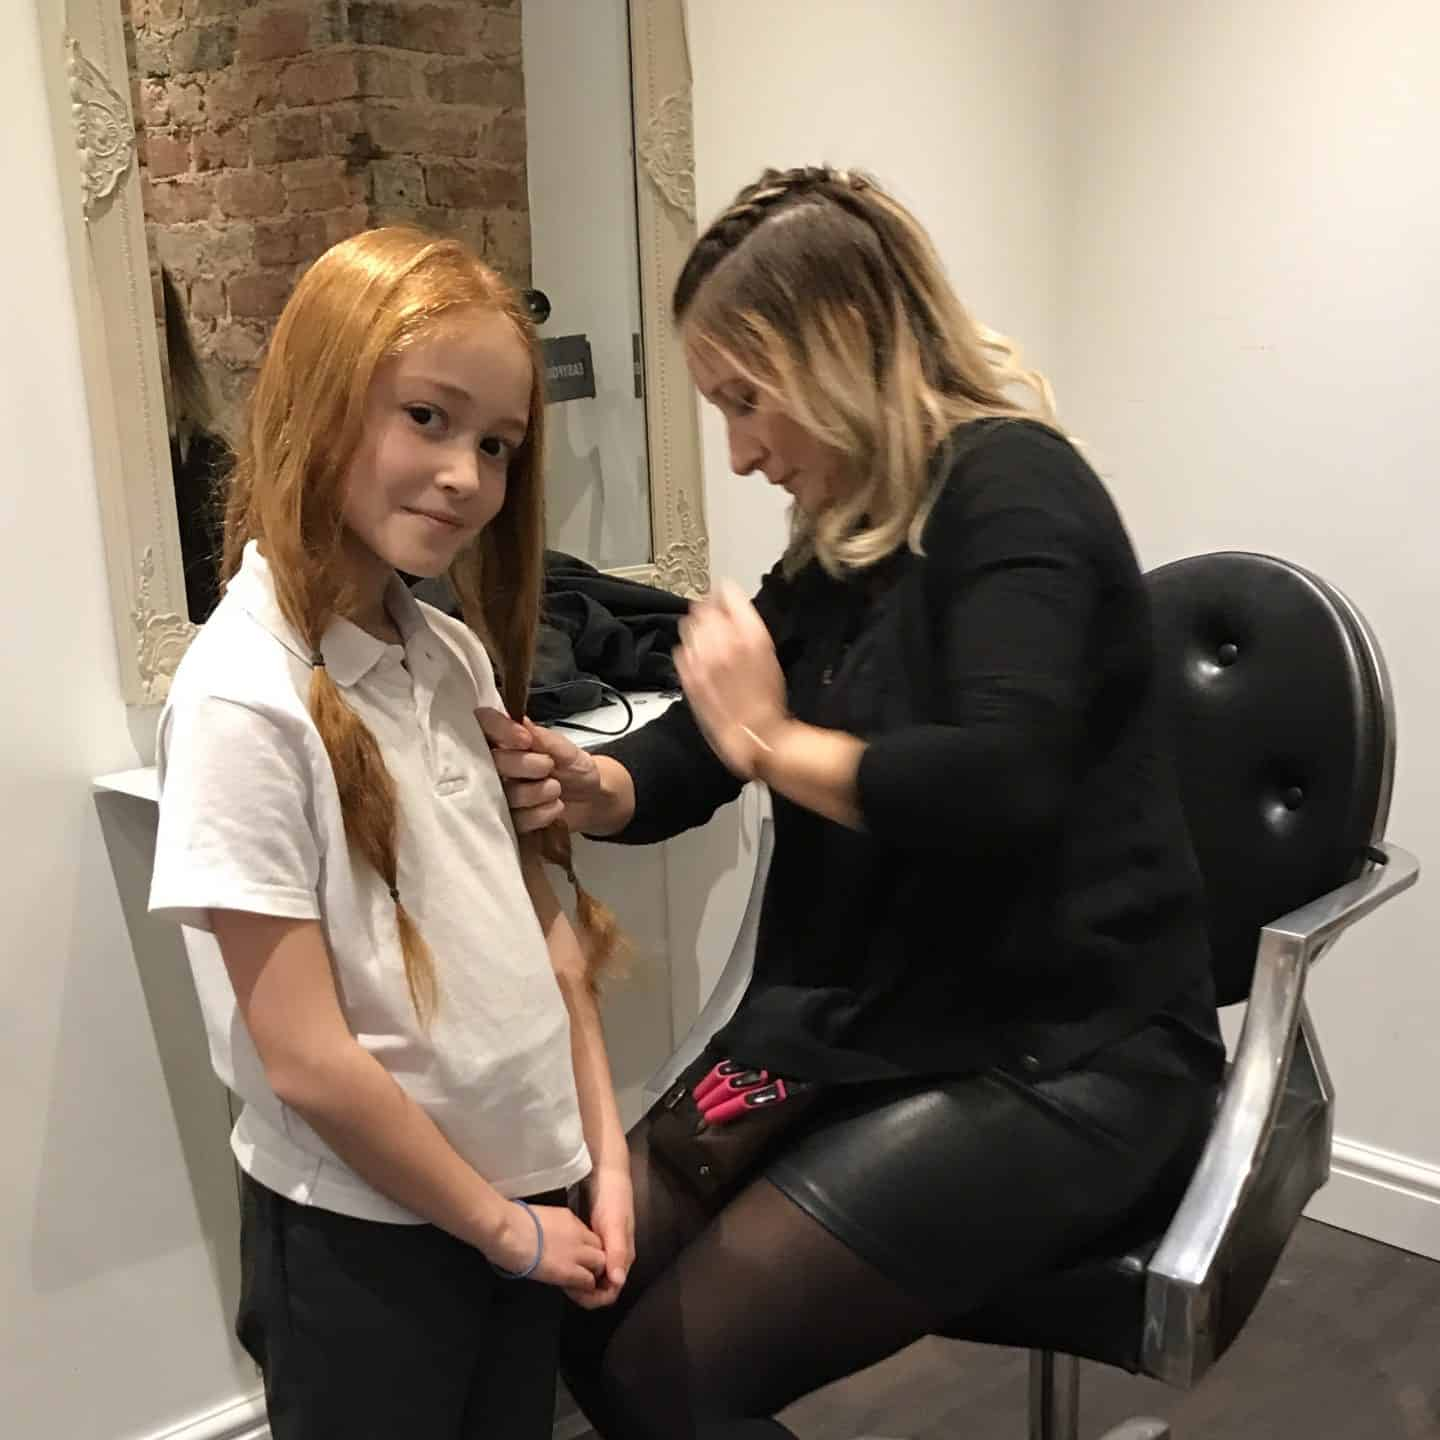 Ava about to get her hair cut to donate to the Little Princess Trust